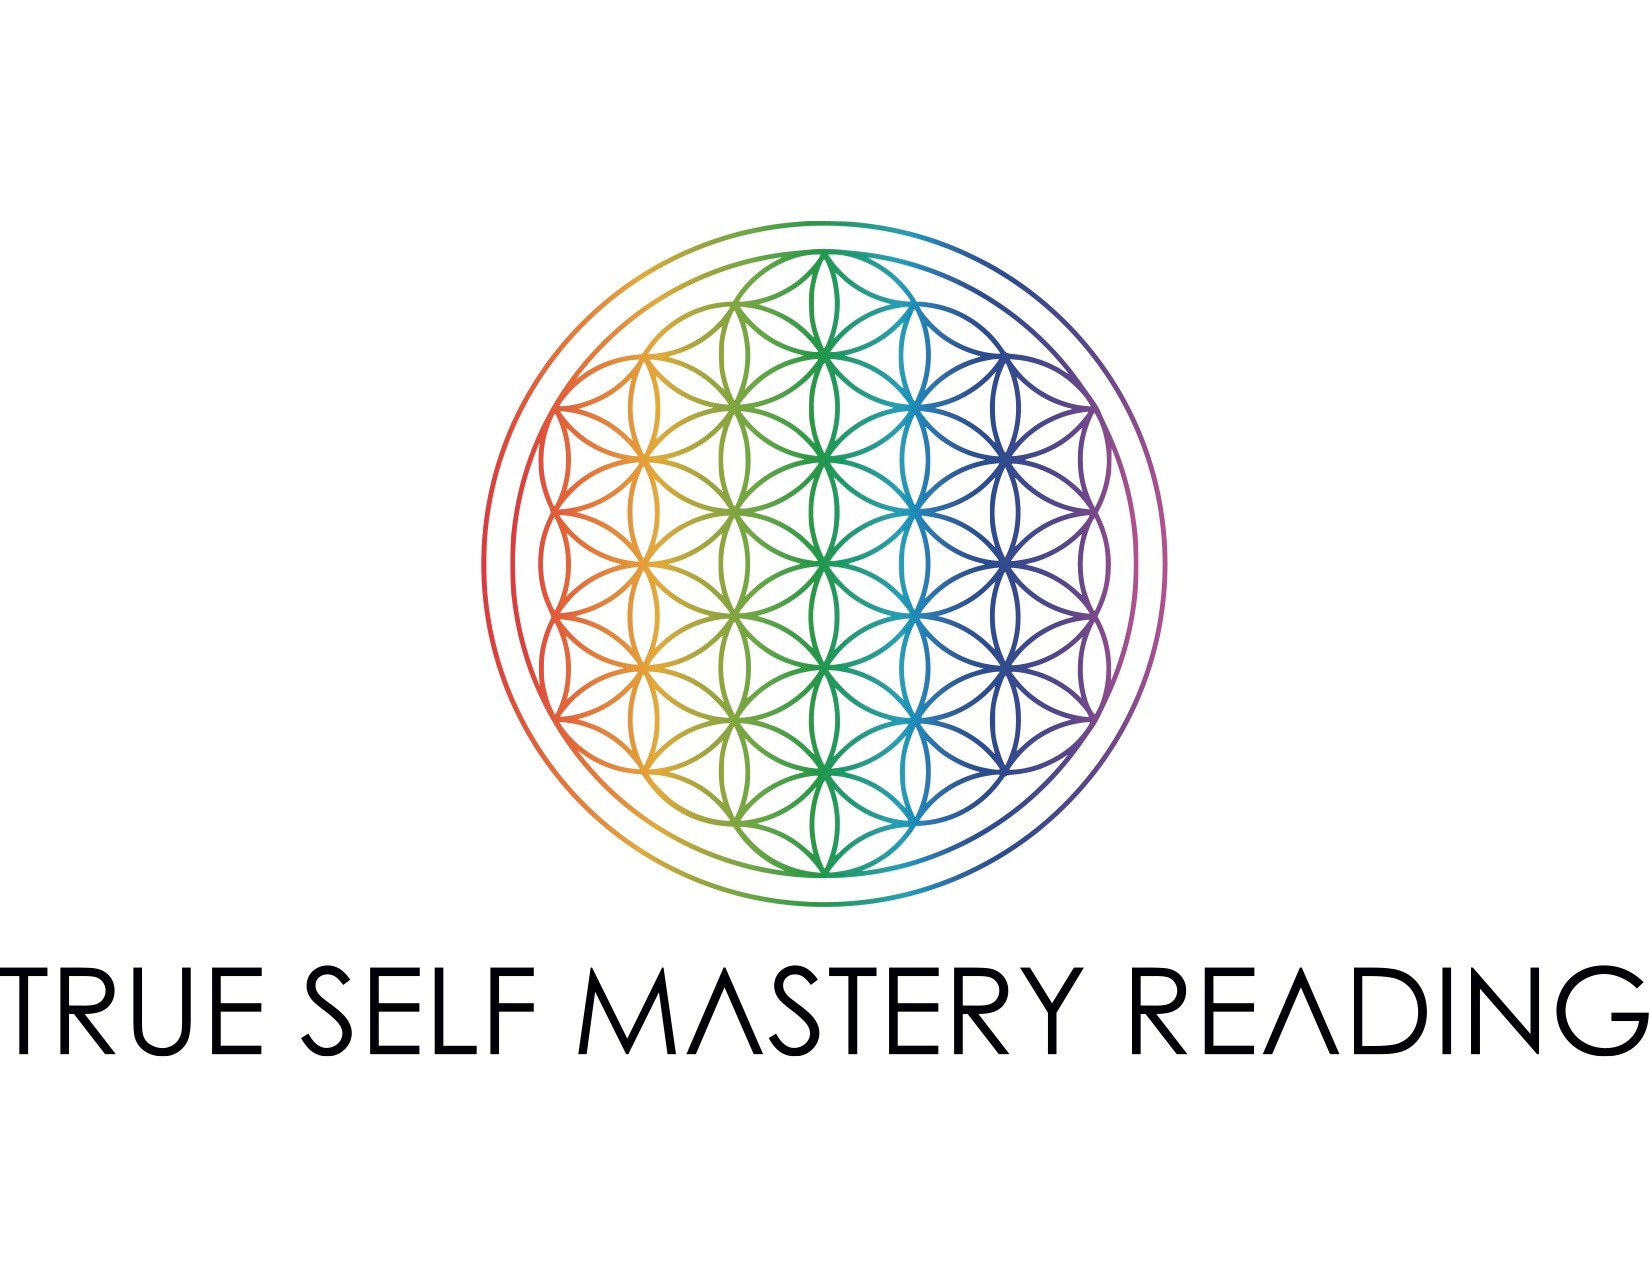 TRUE SELF MASTERY READING